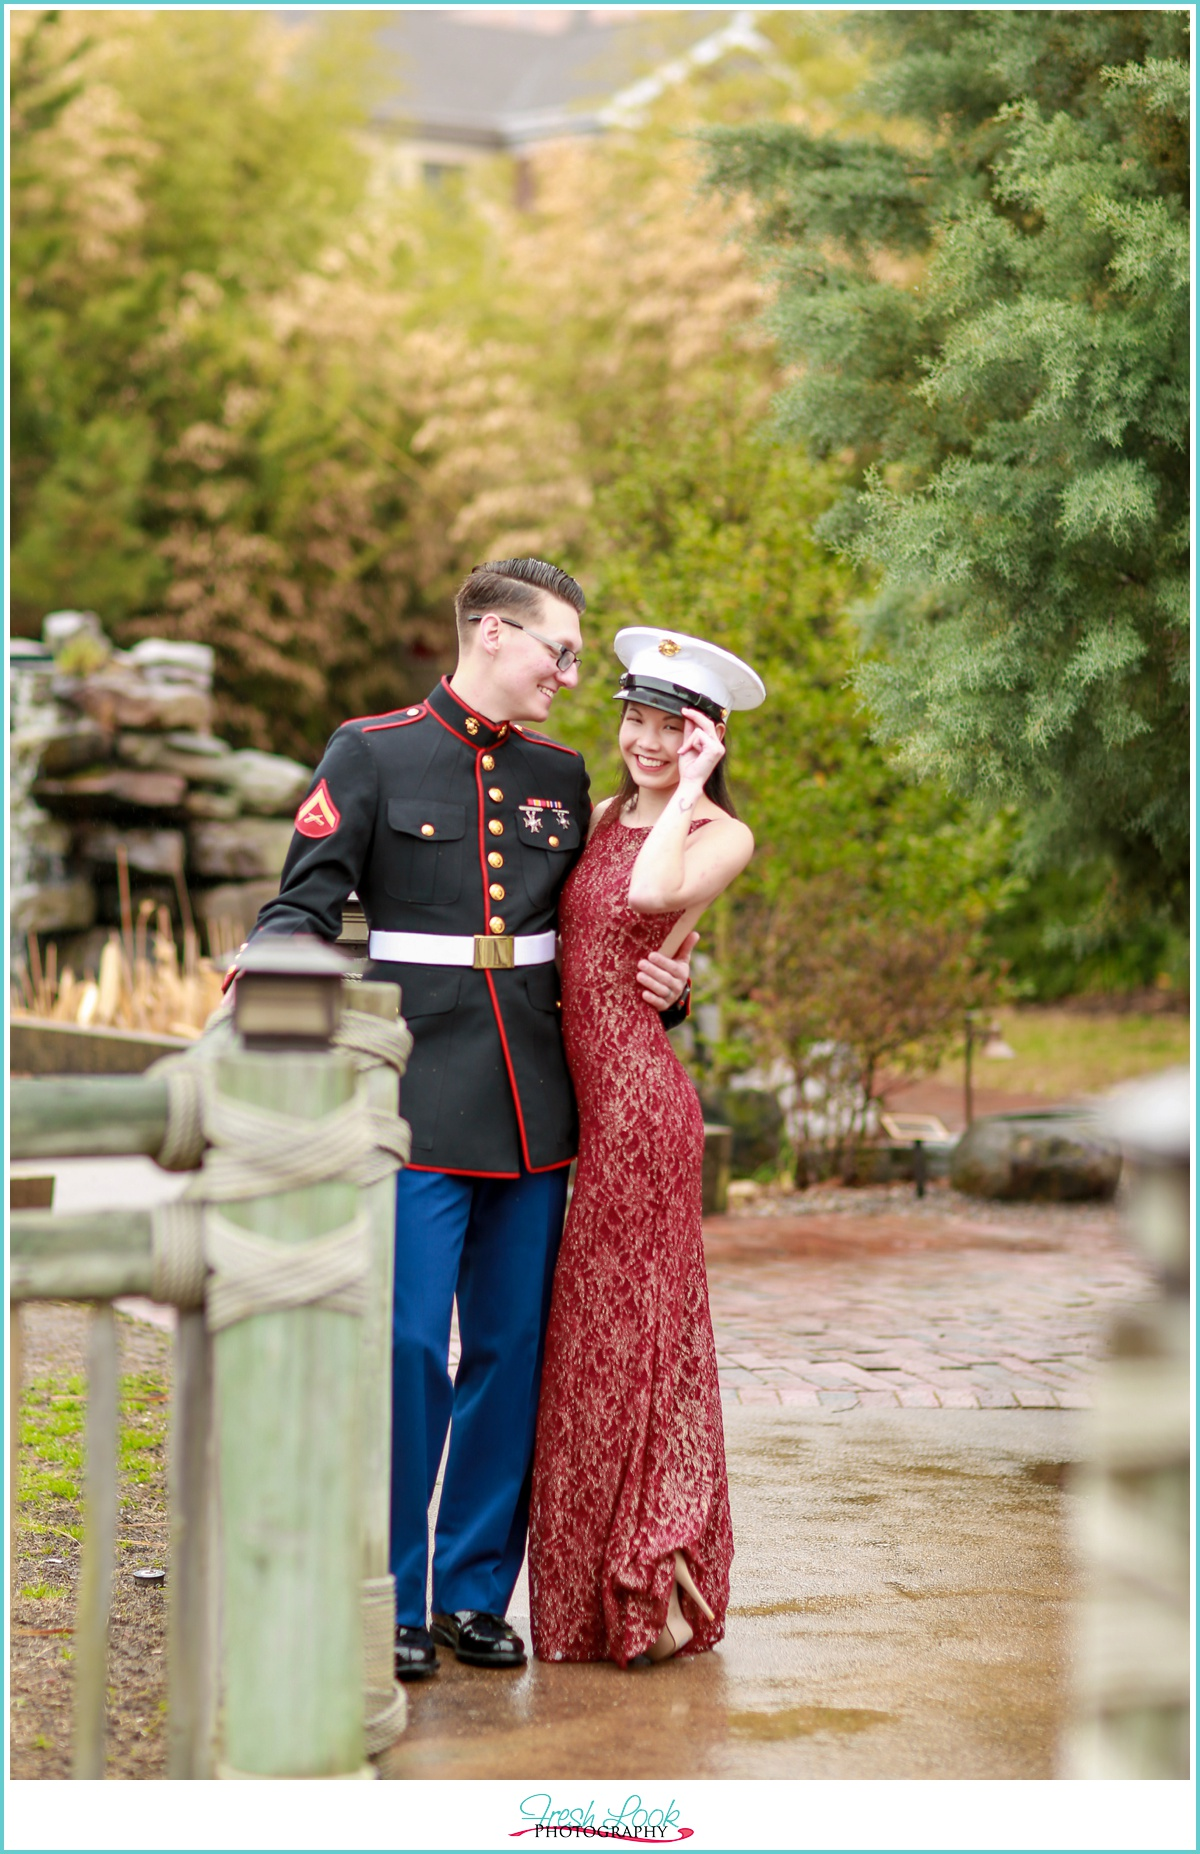 fun engagement photos for military couple